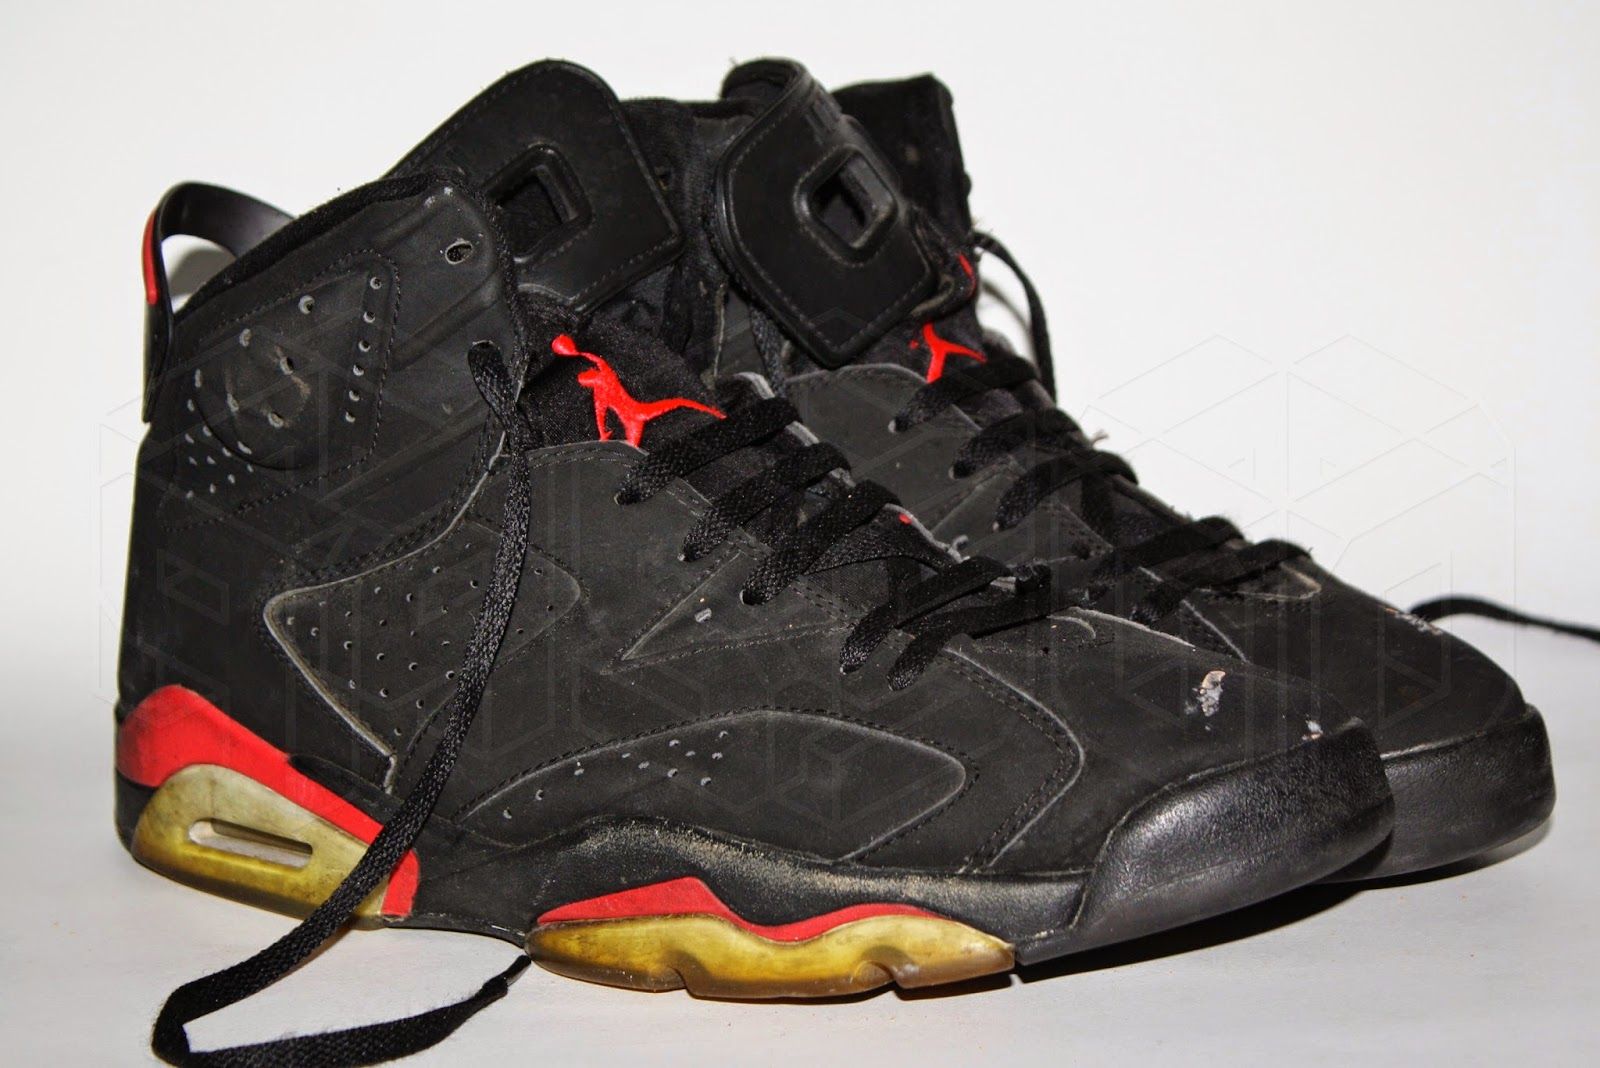 afd01820a658f1 coupon air jordan vi 6 retro white infrared new images fda50 cadb6  new  zealand clean air jordan 6 2ebe3 12e90